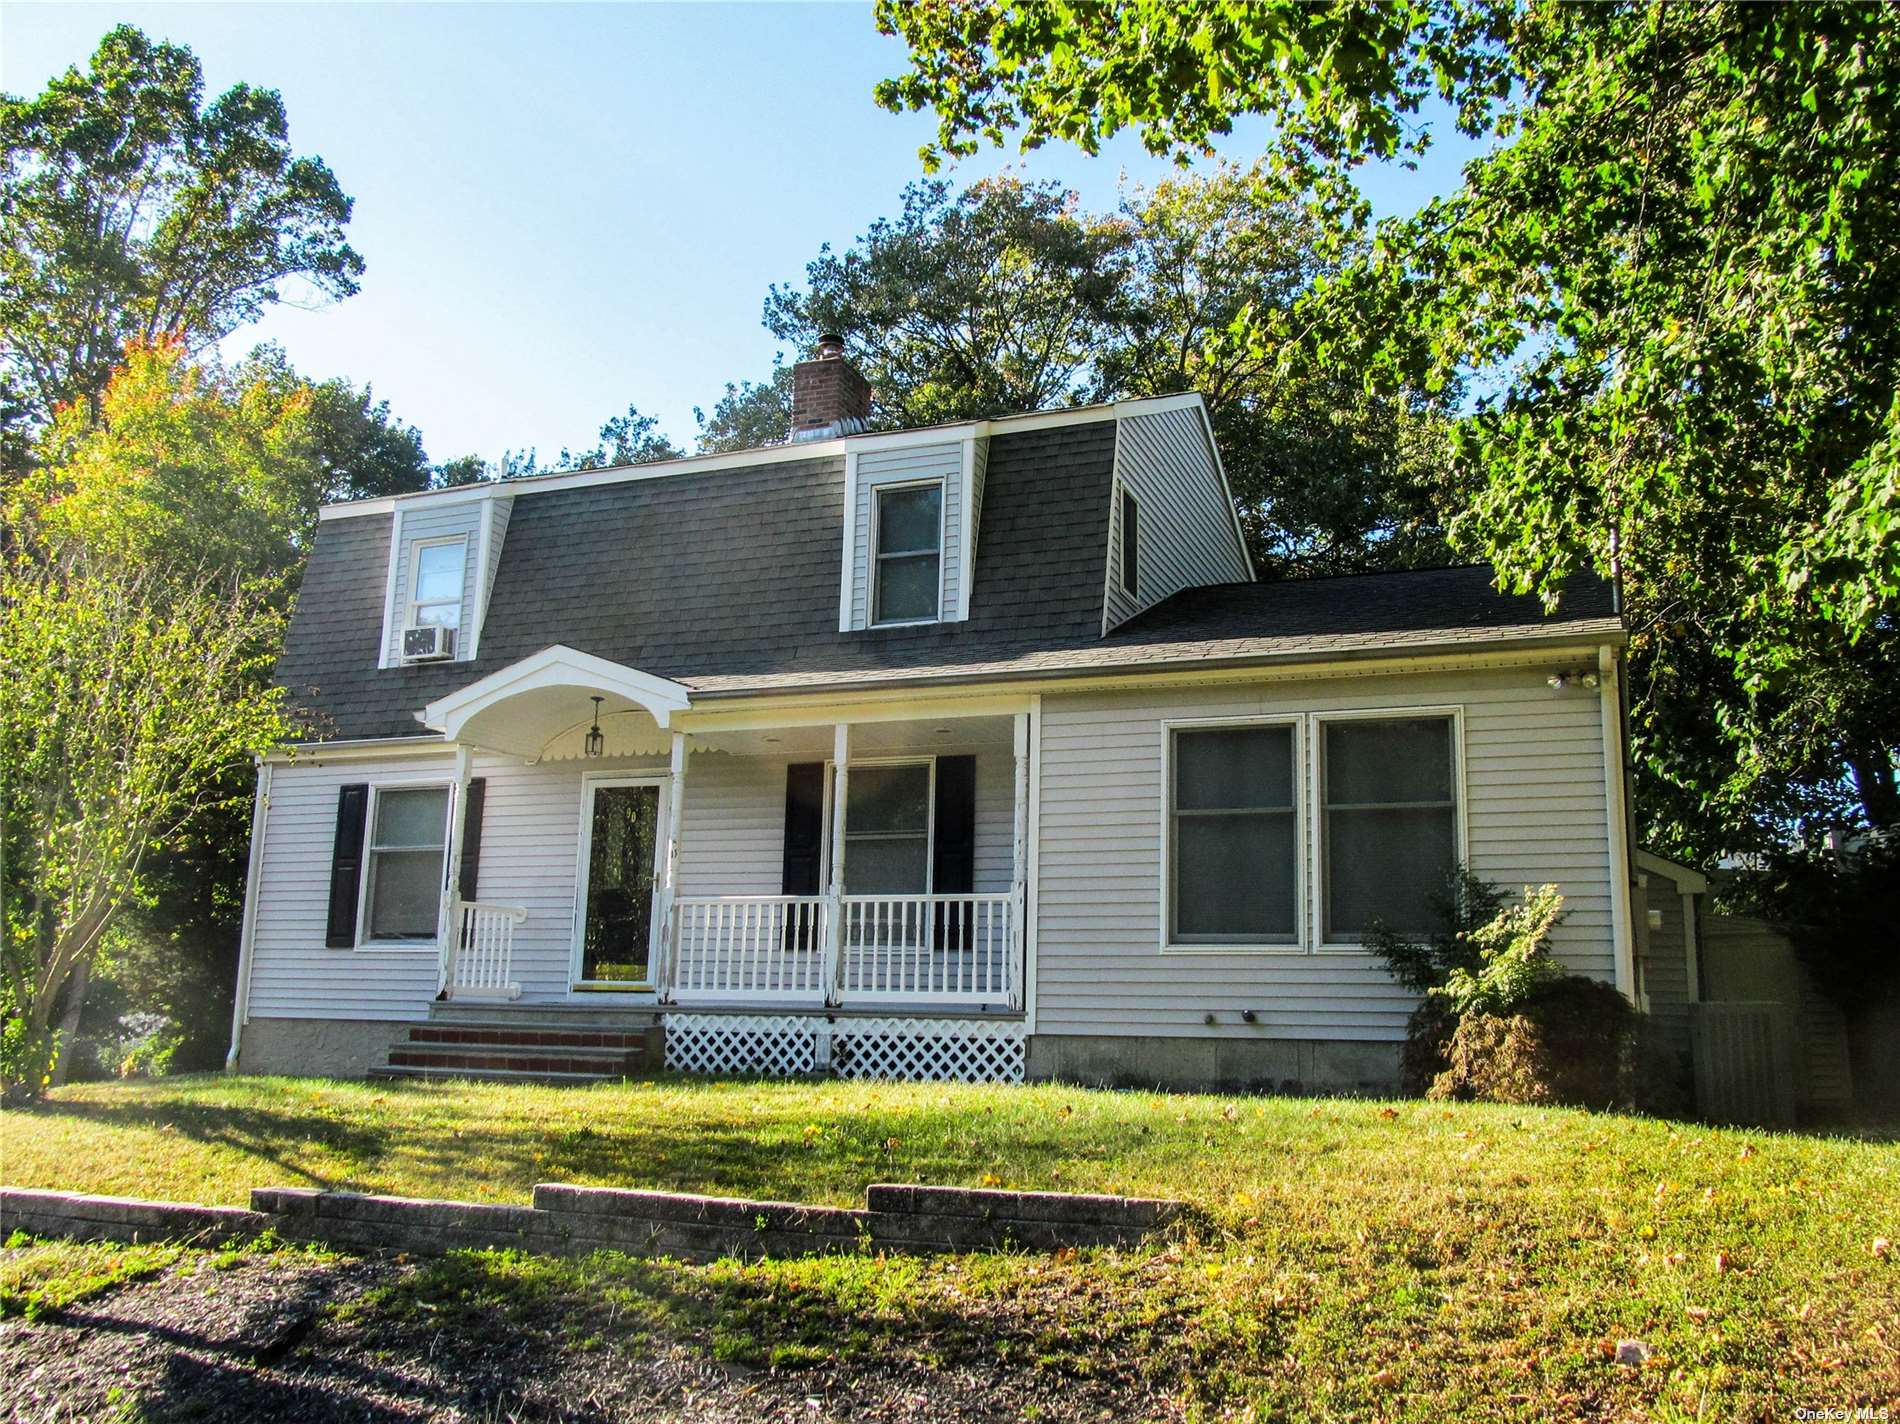 Welcome Home! This Home Has So Much To Offer: Hardwood Floors, Brand New Kitchen With Stainless Steel Appliances And Quartz Countertops, Large Den, Updated Baths, 1.5 Car Garage, Full Basement, Central Air Conditioning....Don't Wait!